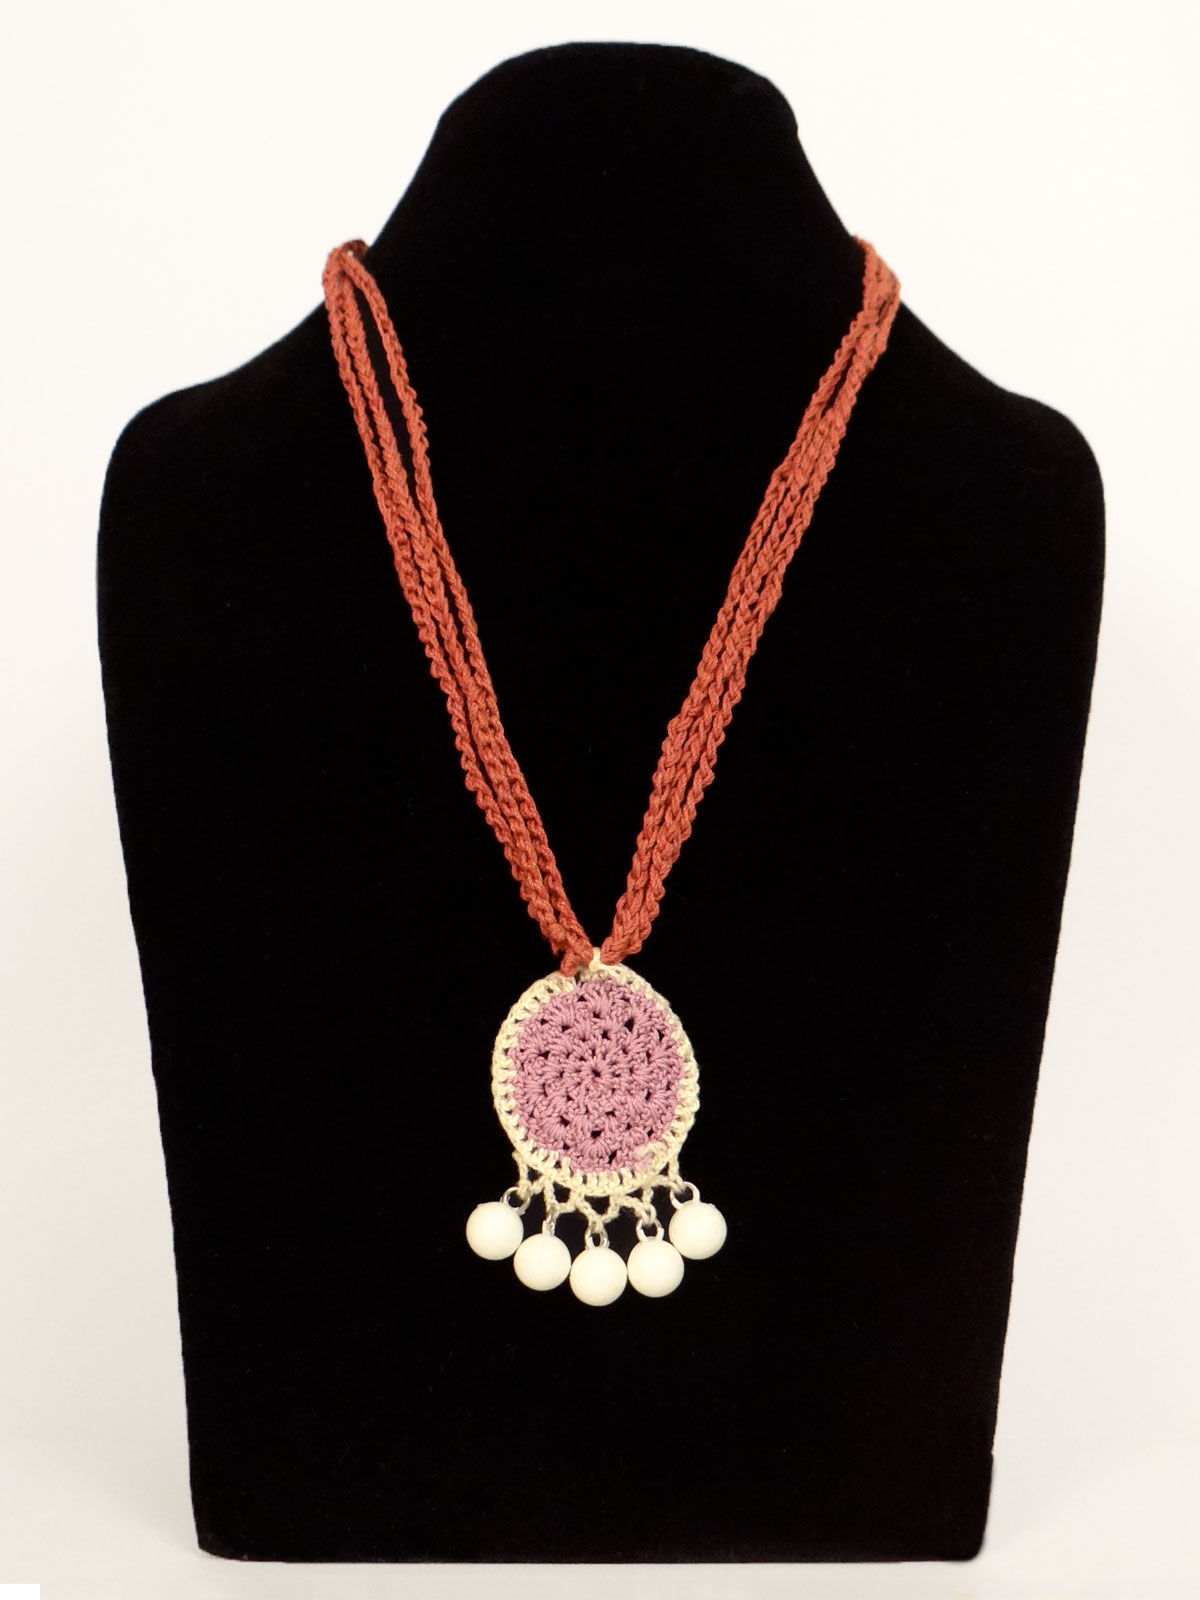 Orange long crochet fabric necklace  with white pearls